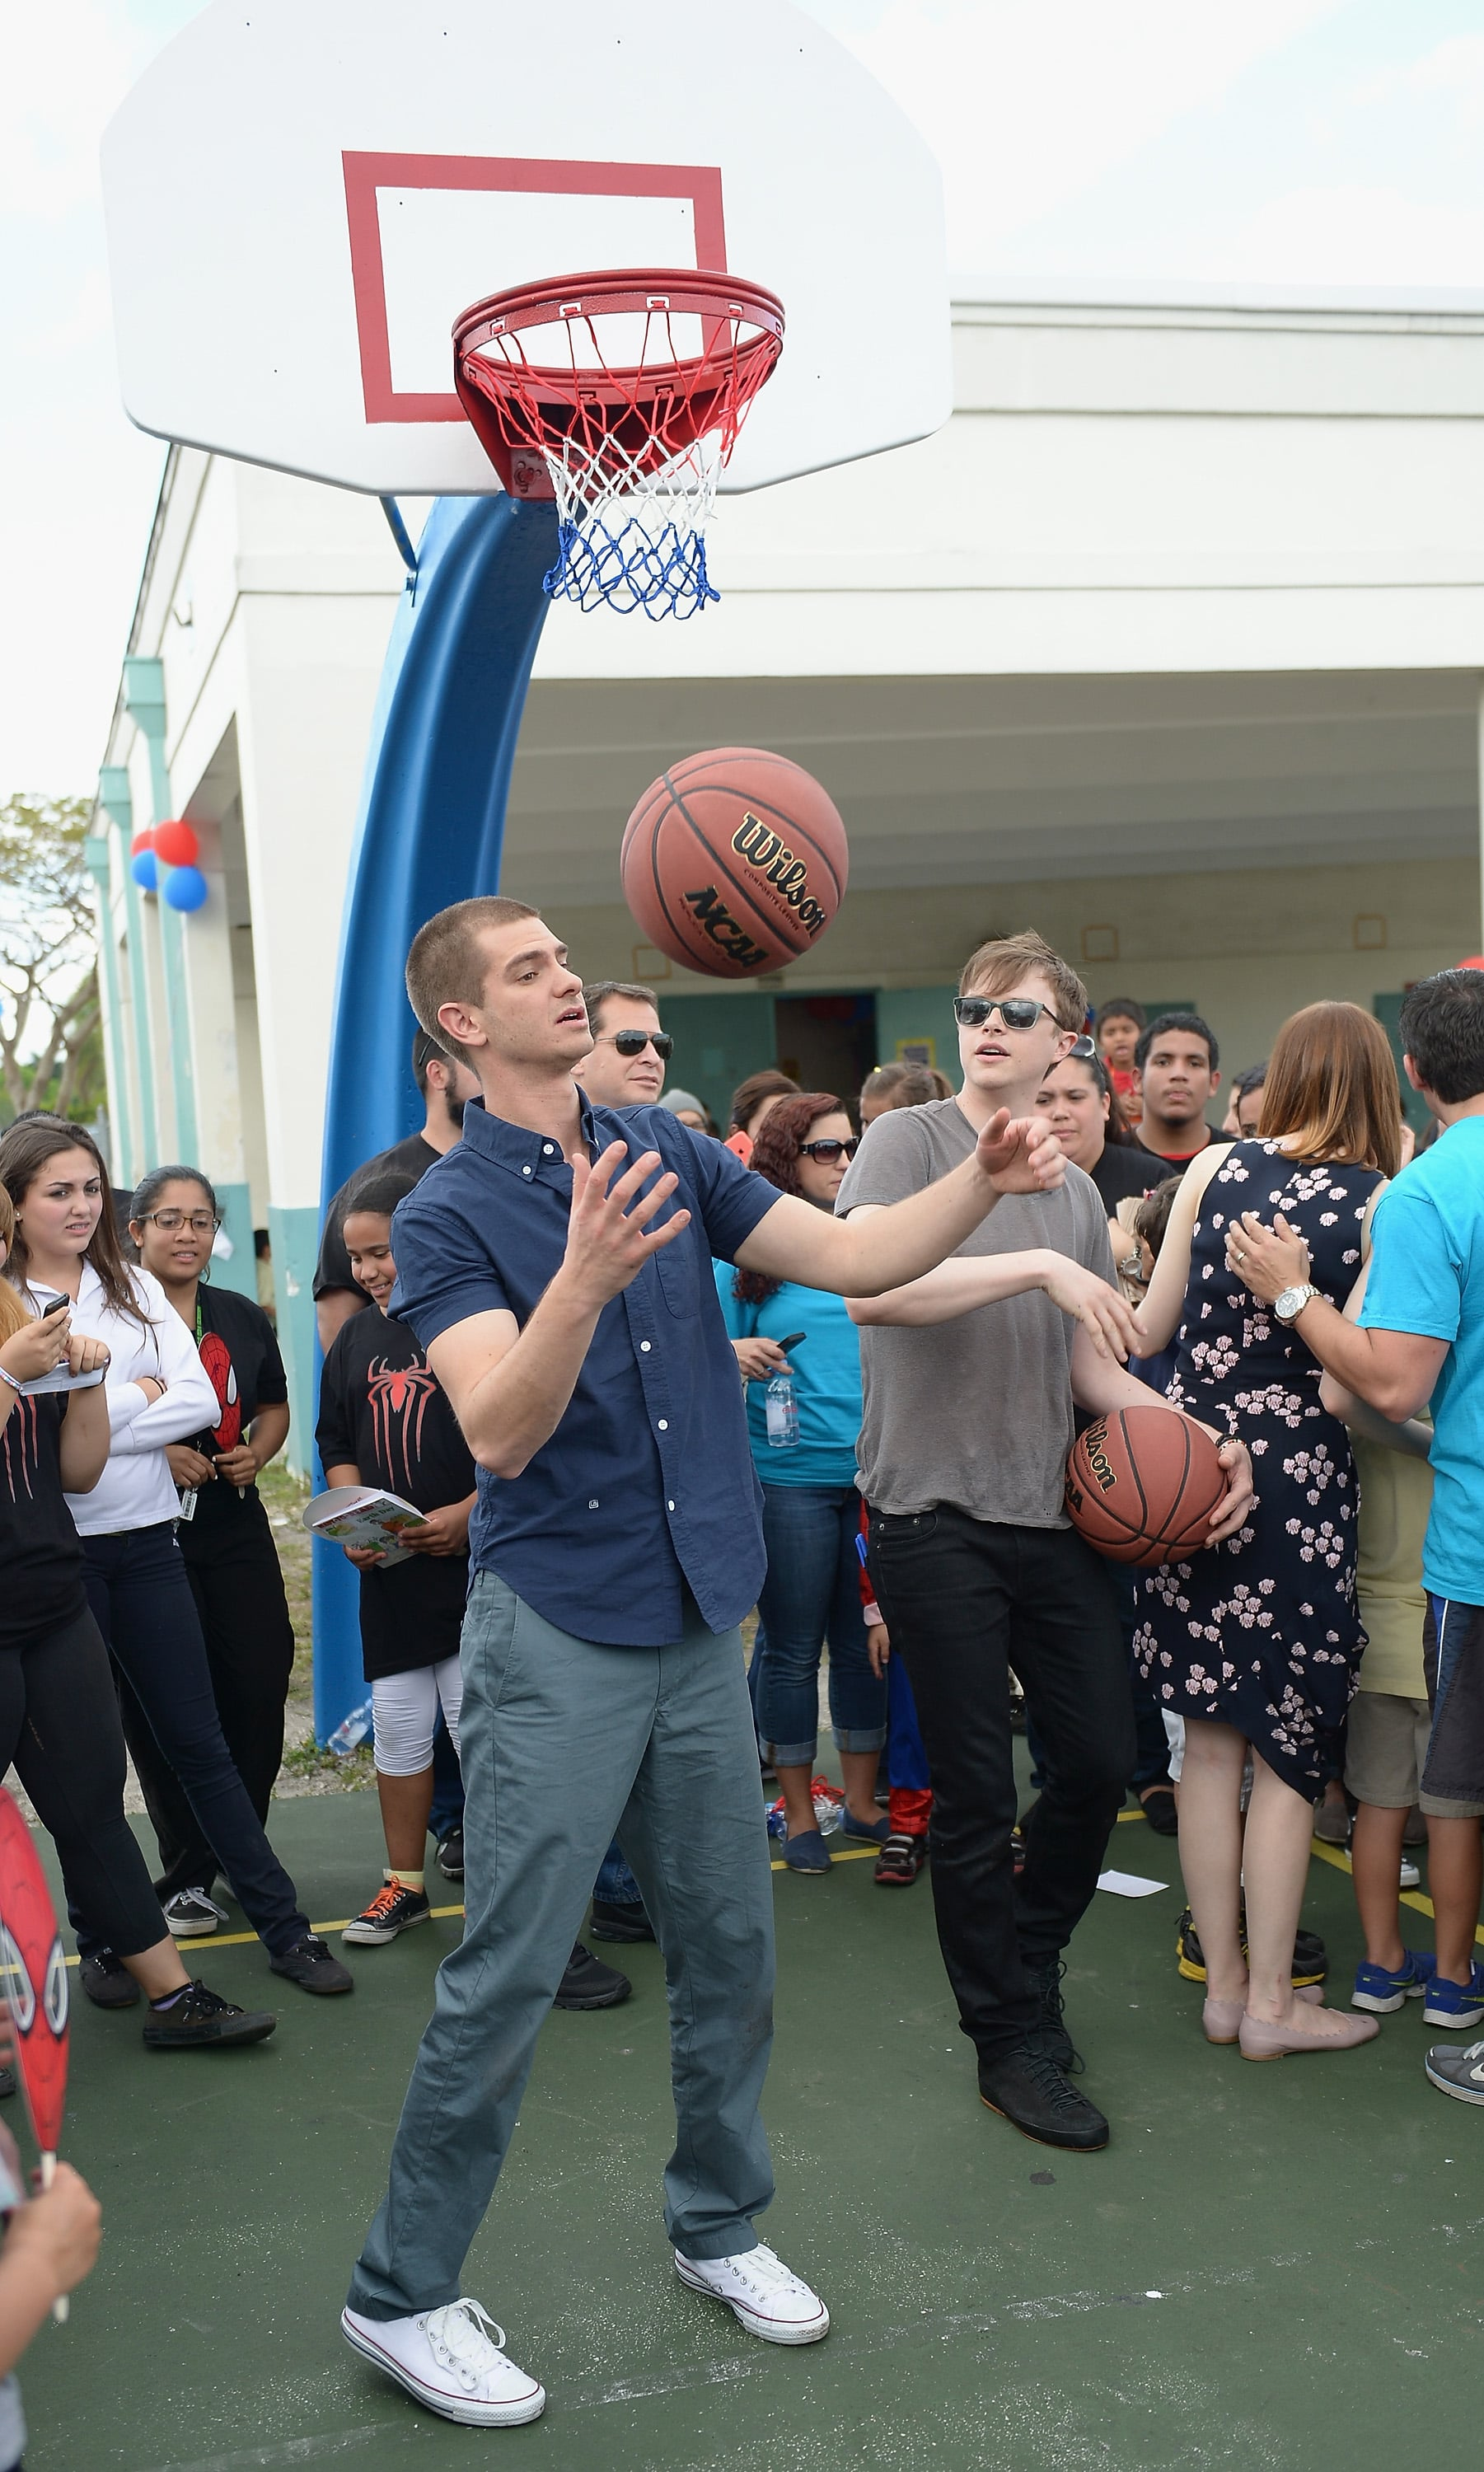 Andrew showed off his basketball skills while Dane watched.